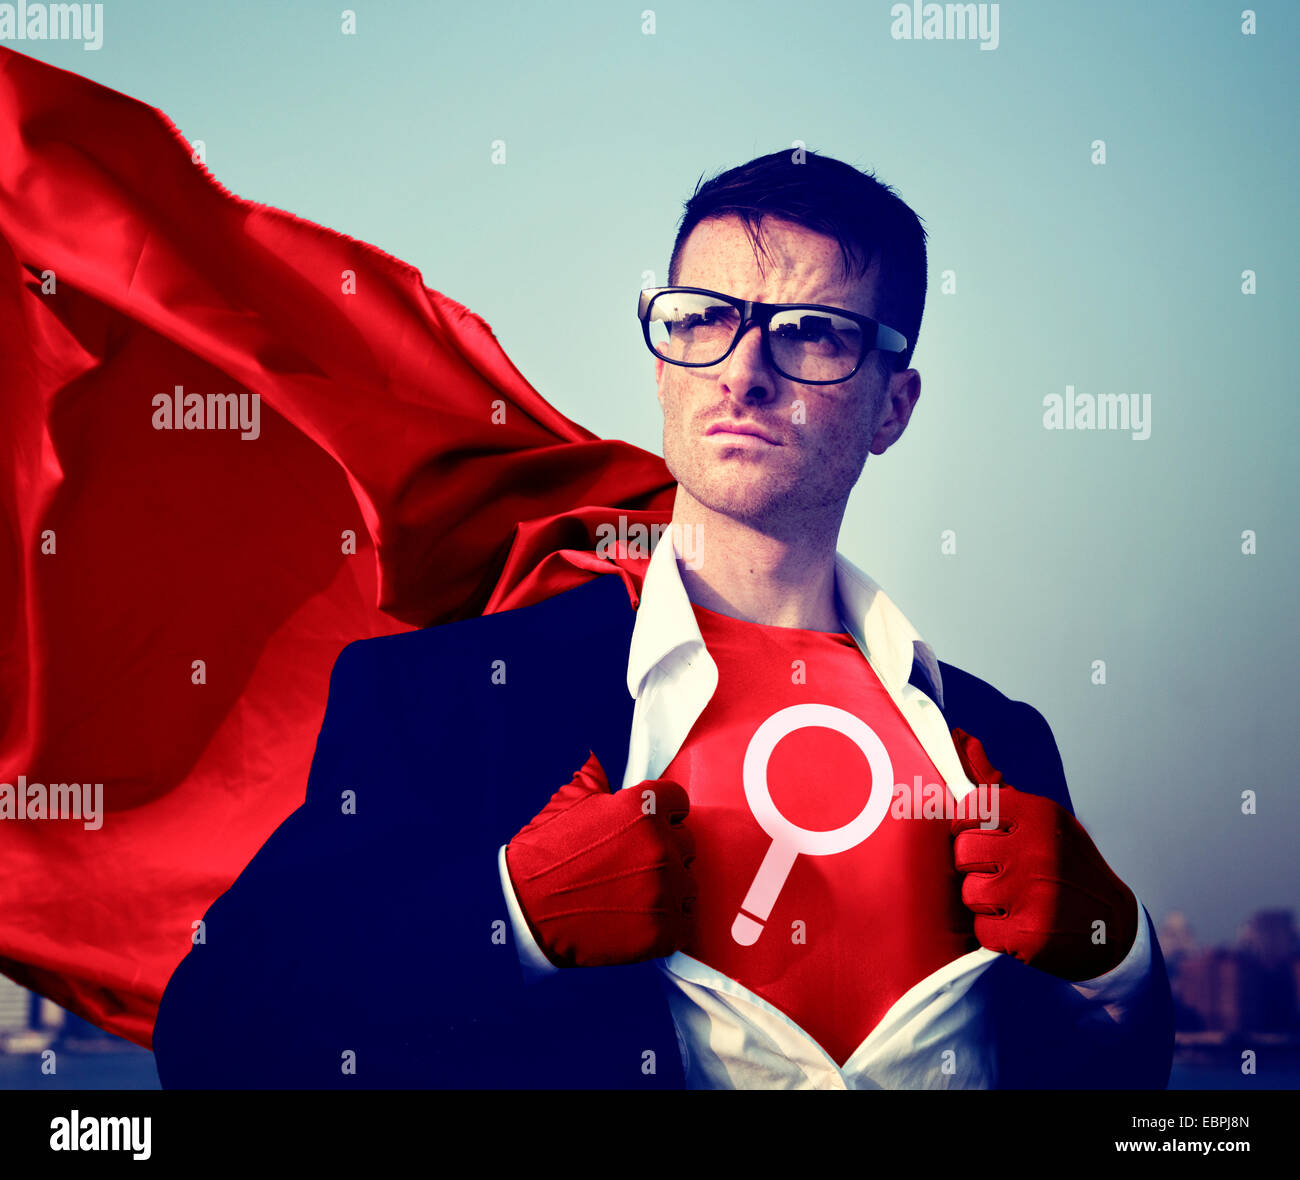 Magnifying Strong Superhero Success Professional Empowerment Stock Concept Stock Photo